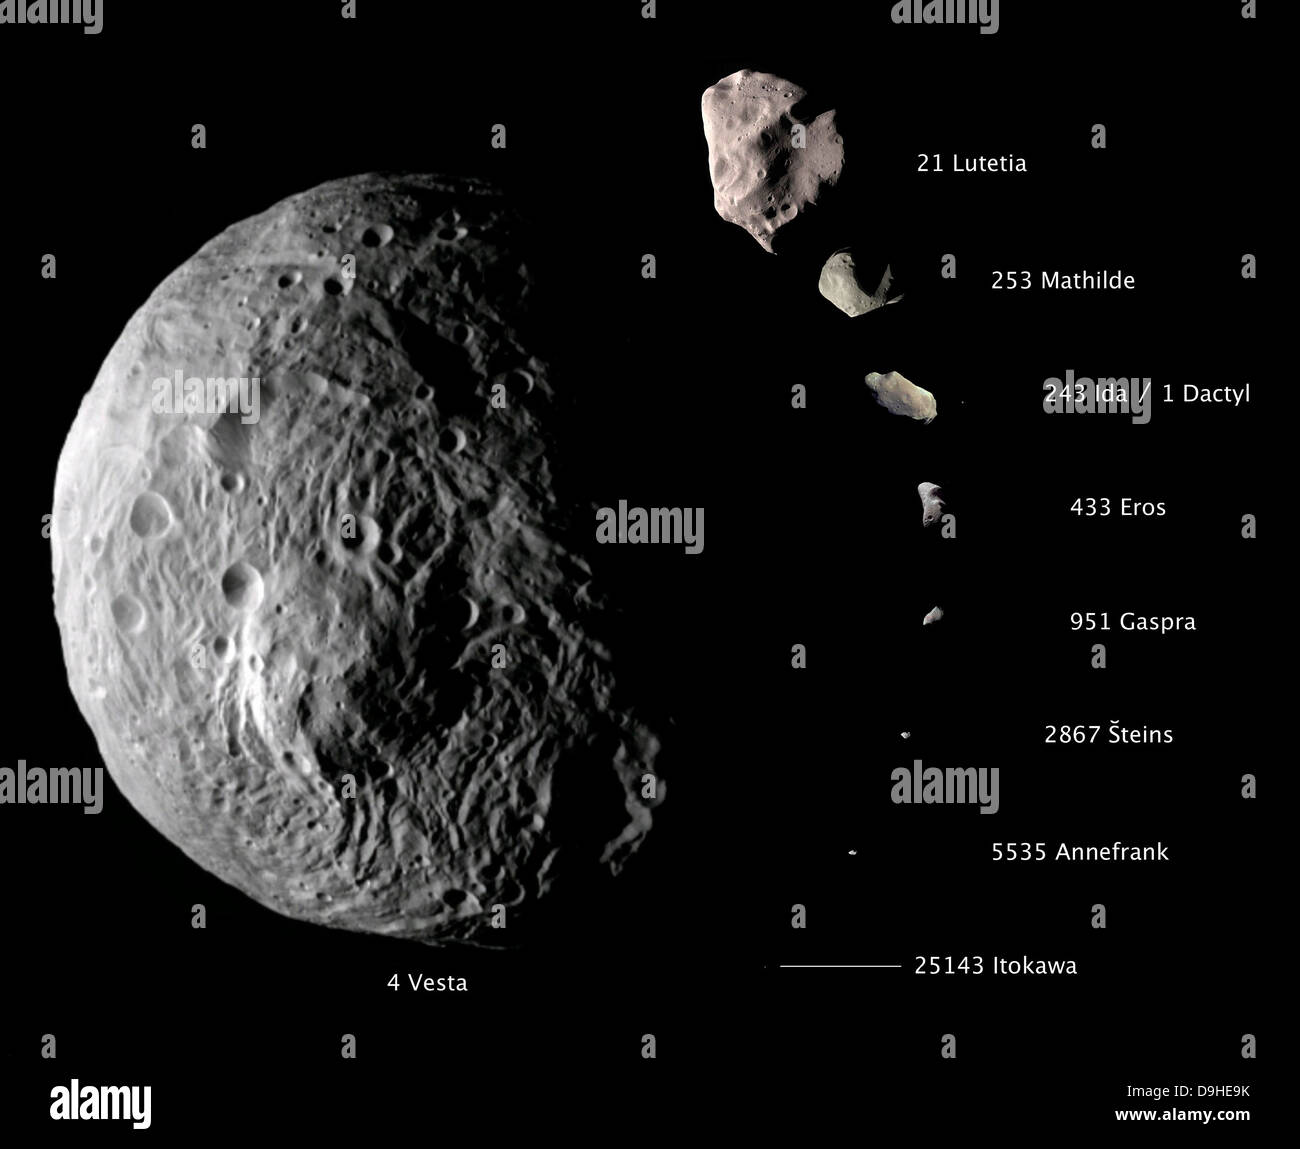 Digital composite showing the comparative sizes of nine asteroids. - Stock Image